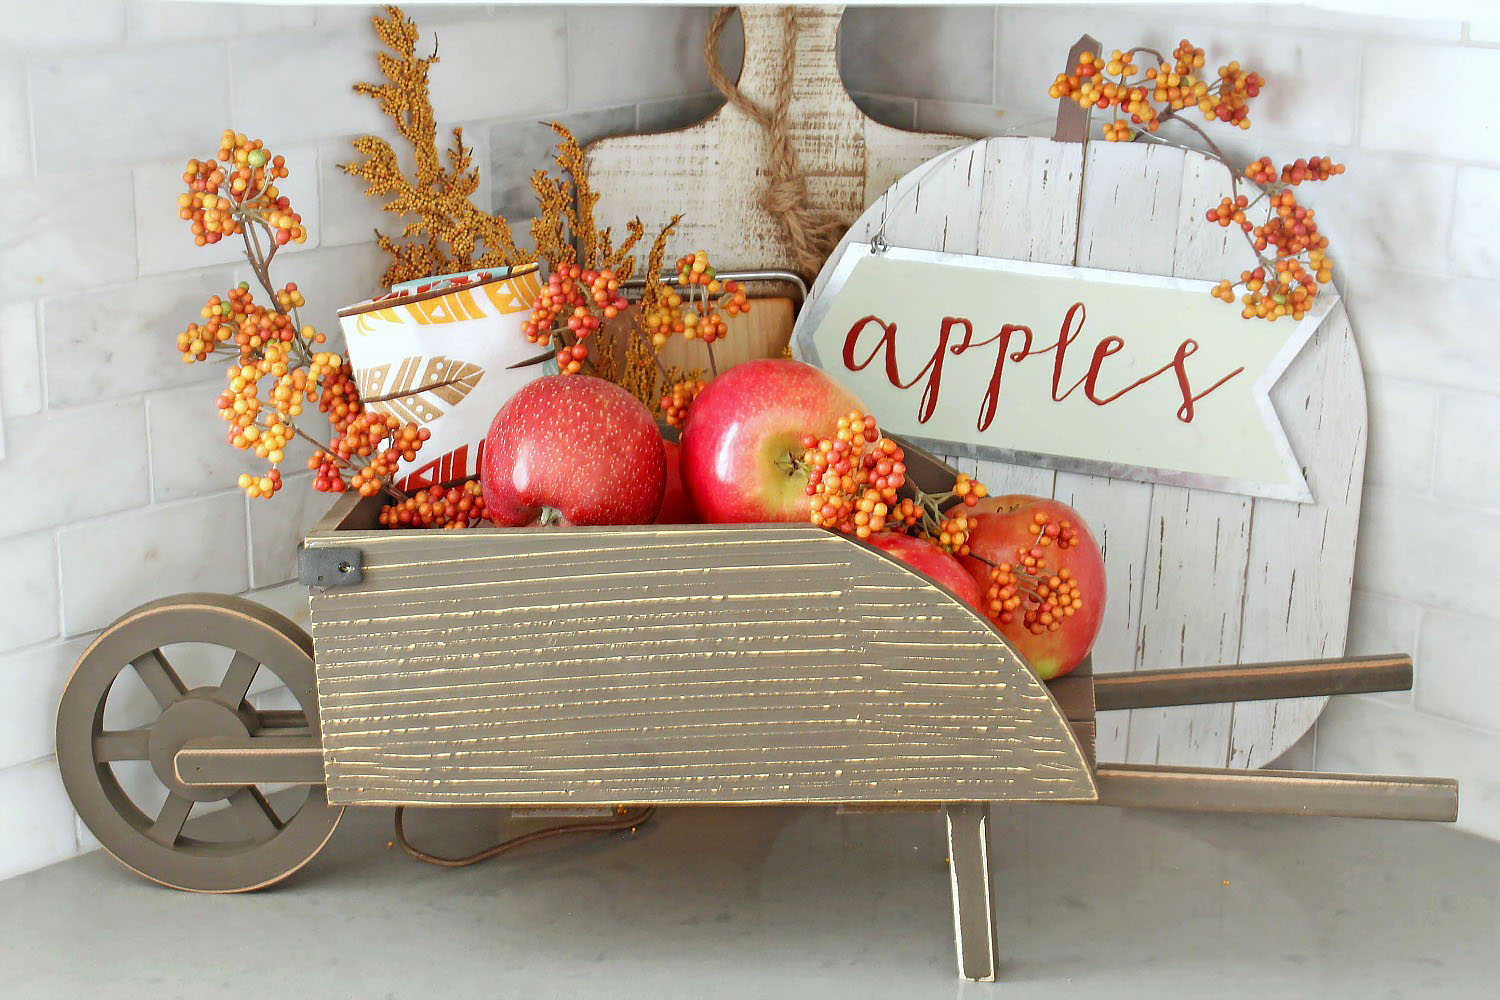 Easy Fall Kitchen Decorating Ideas Simple Ways To Add Some Fall To Your Kitchen Decor